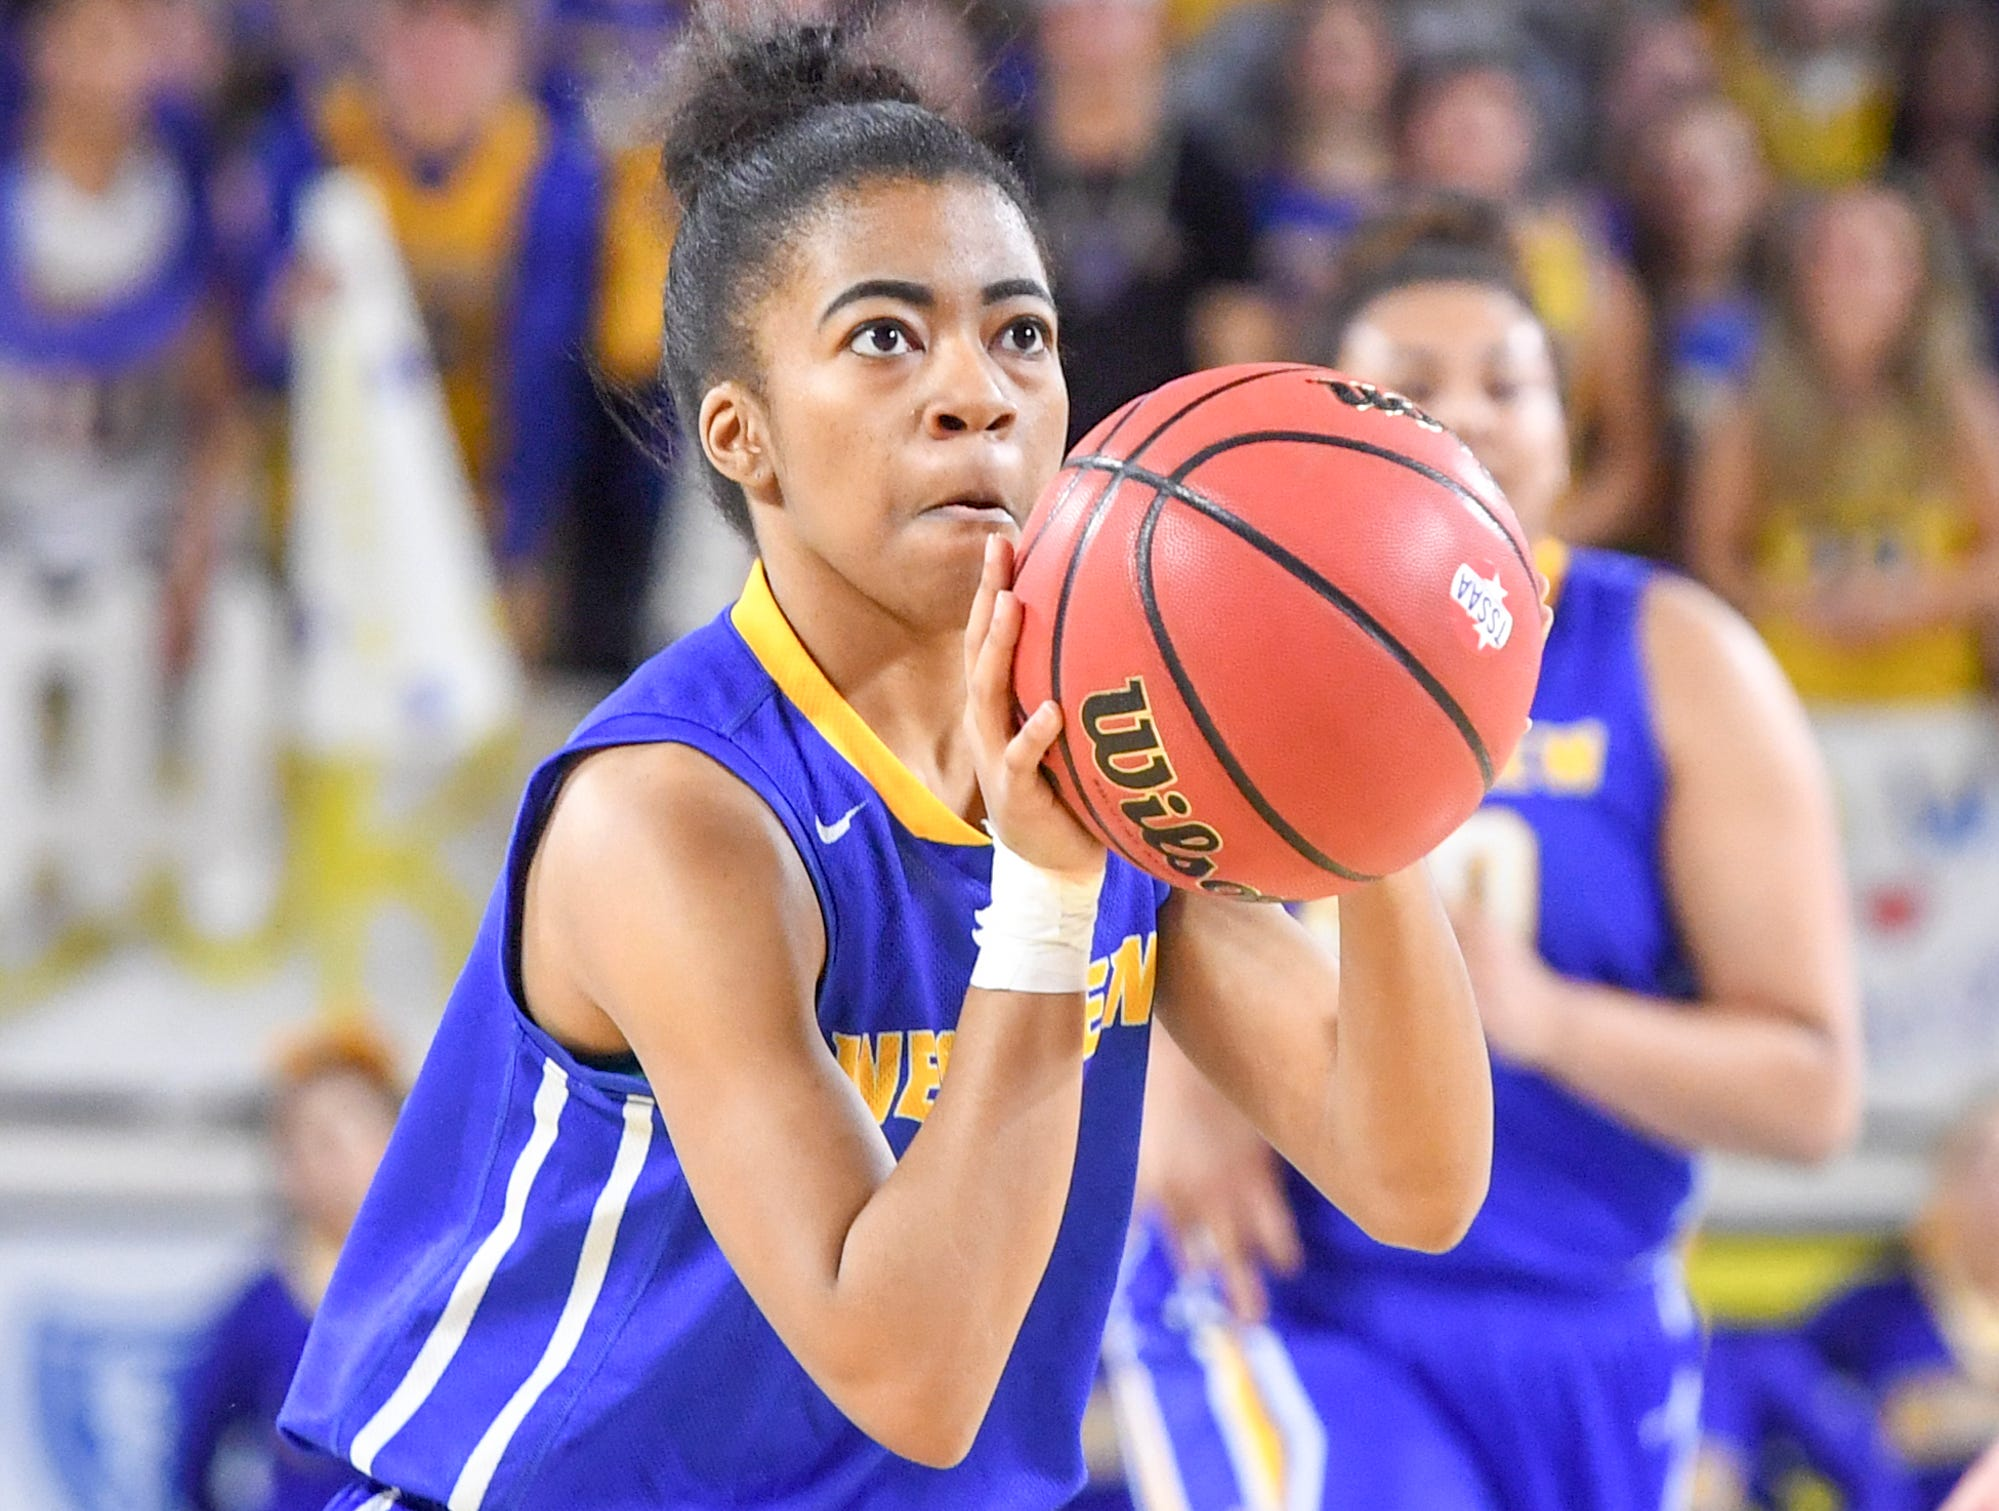 Westview's Zanasha Gadlen (10) spots up for one of her 3-pointers during their Class AA championship game against Cheatham County, Saturday, March 9, 2019, in Murfreesboro.